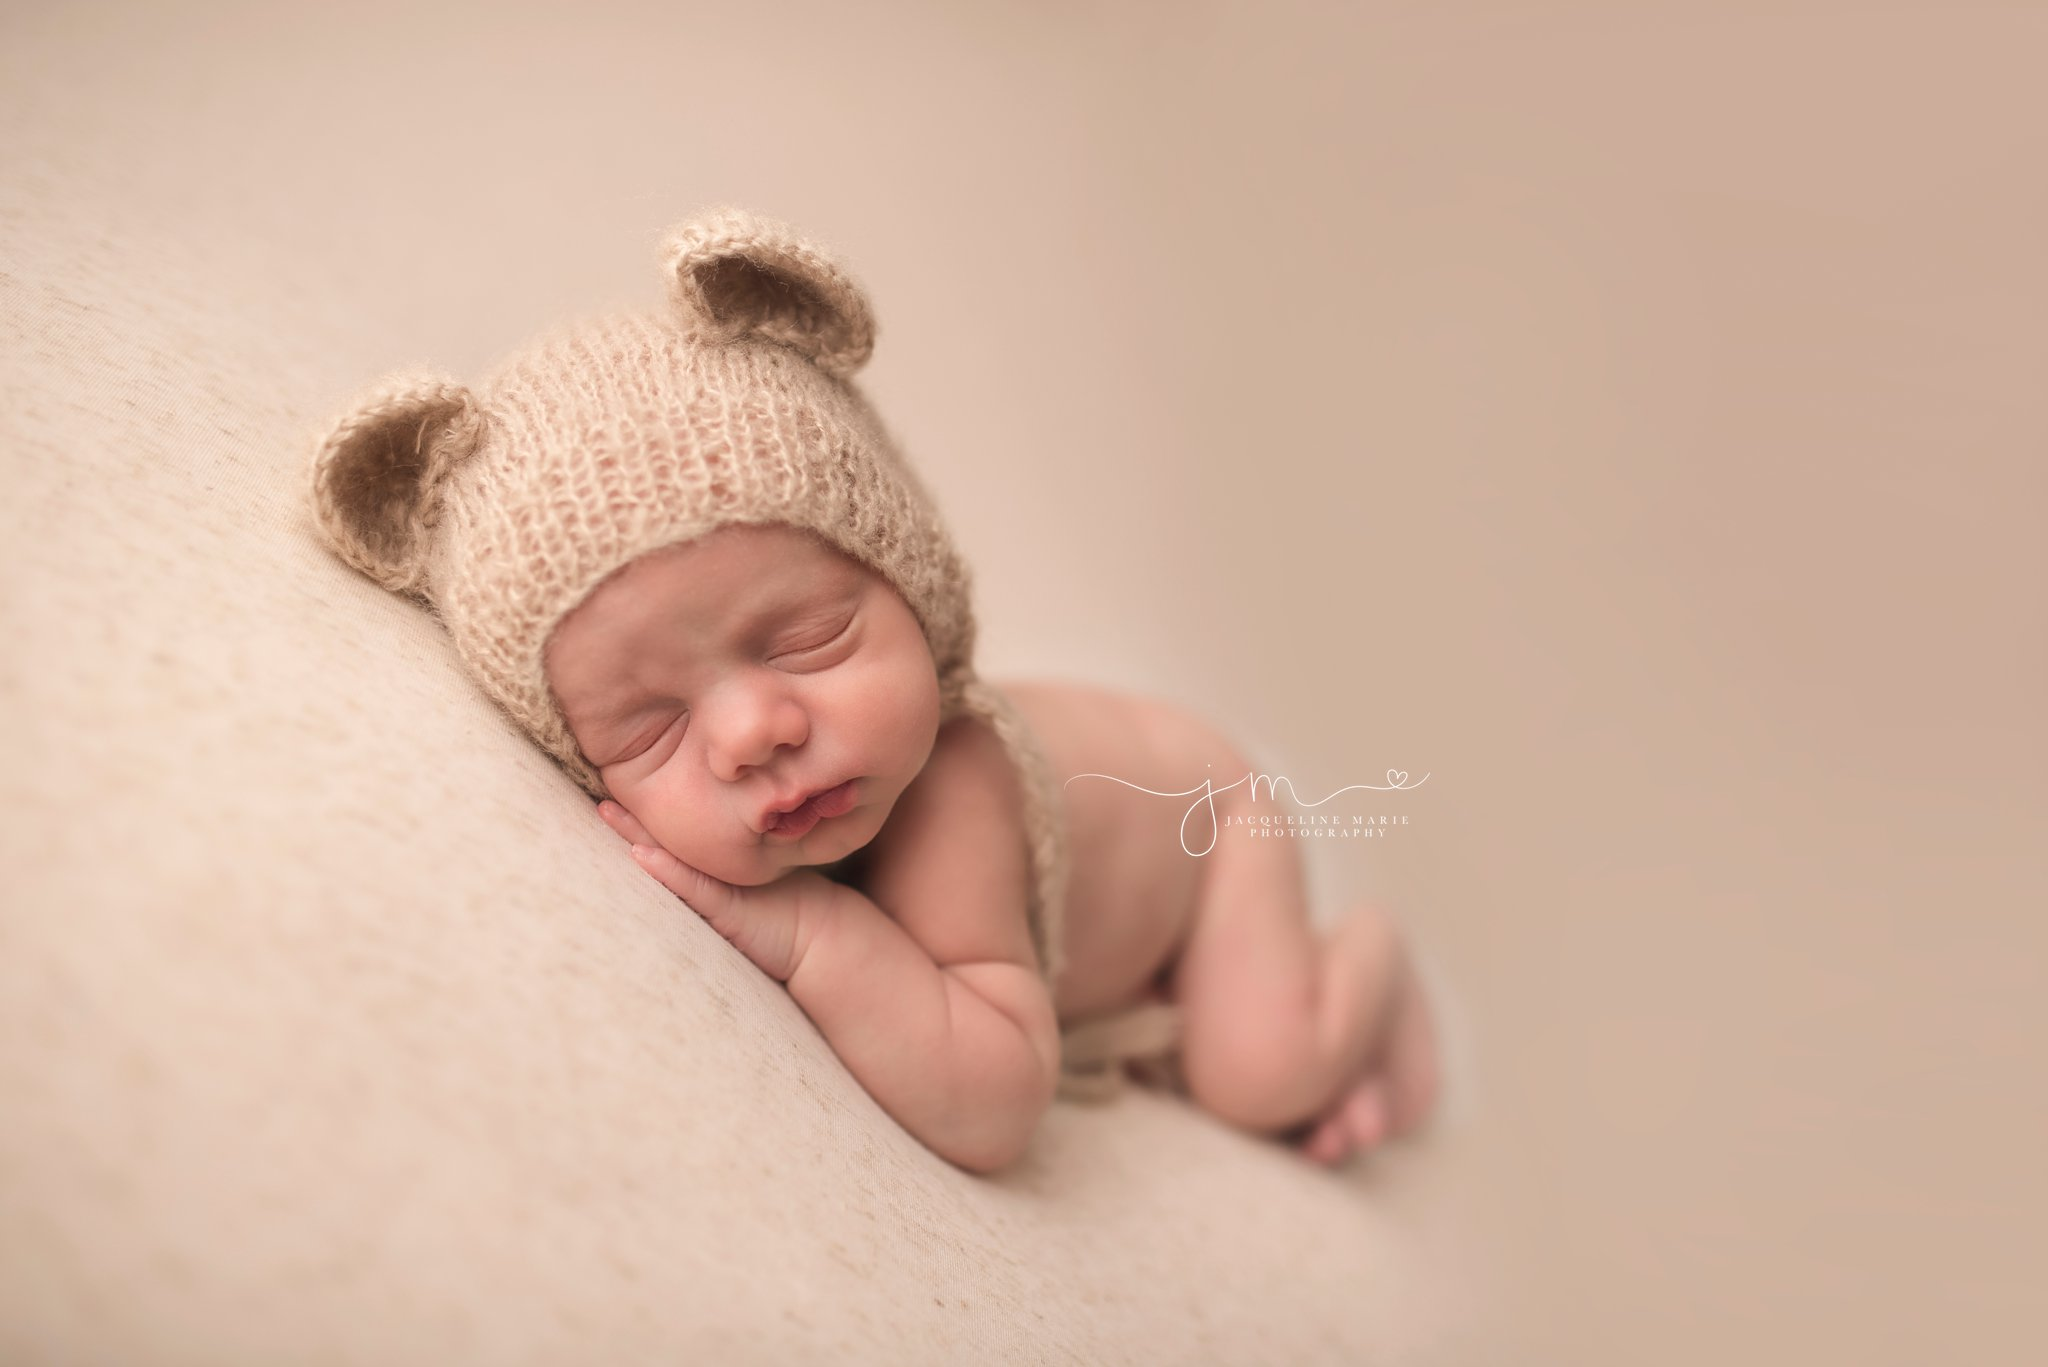 newborn baby picture features 11 day old baby wearing wearing tan teddy bear bonnet in columbus ohio